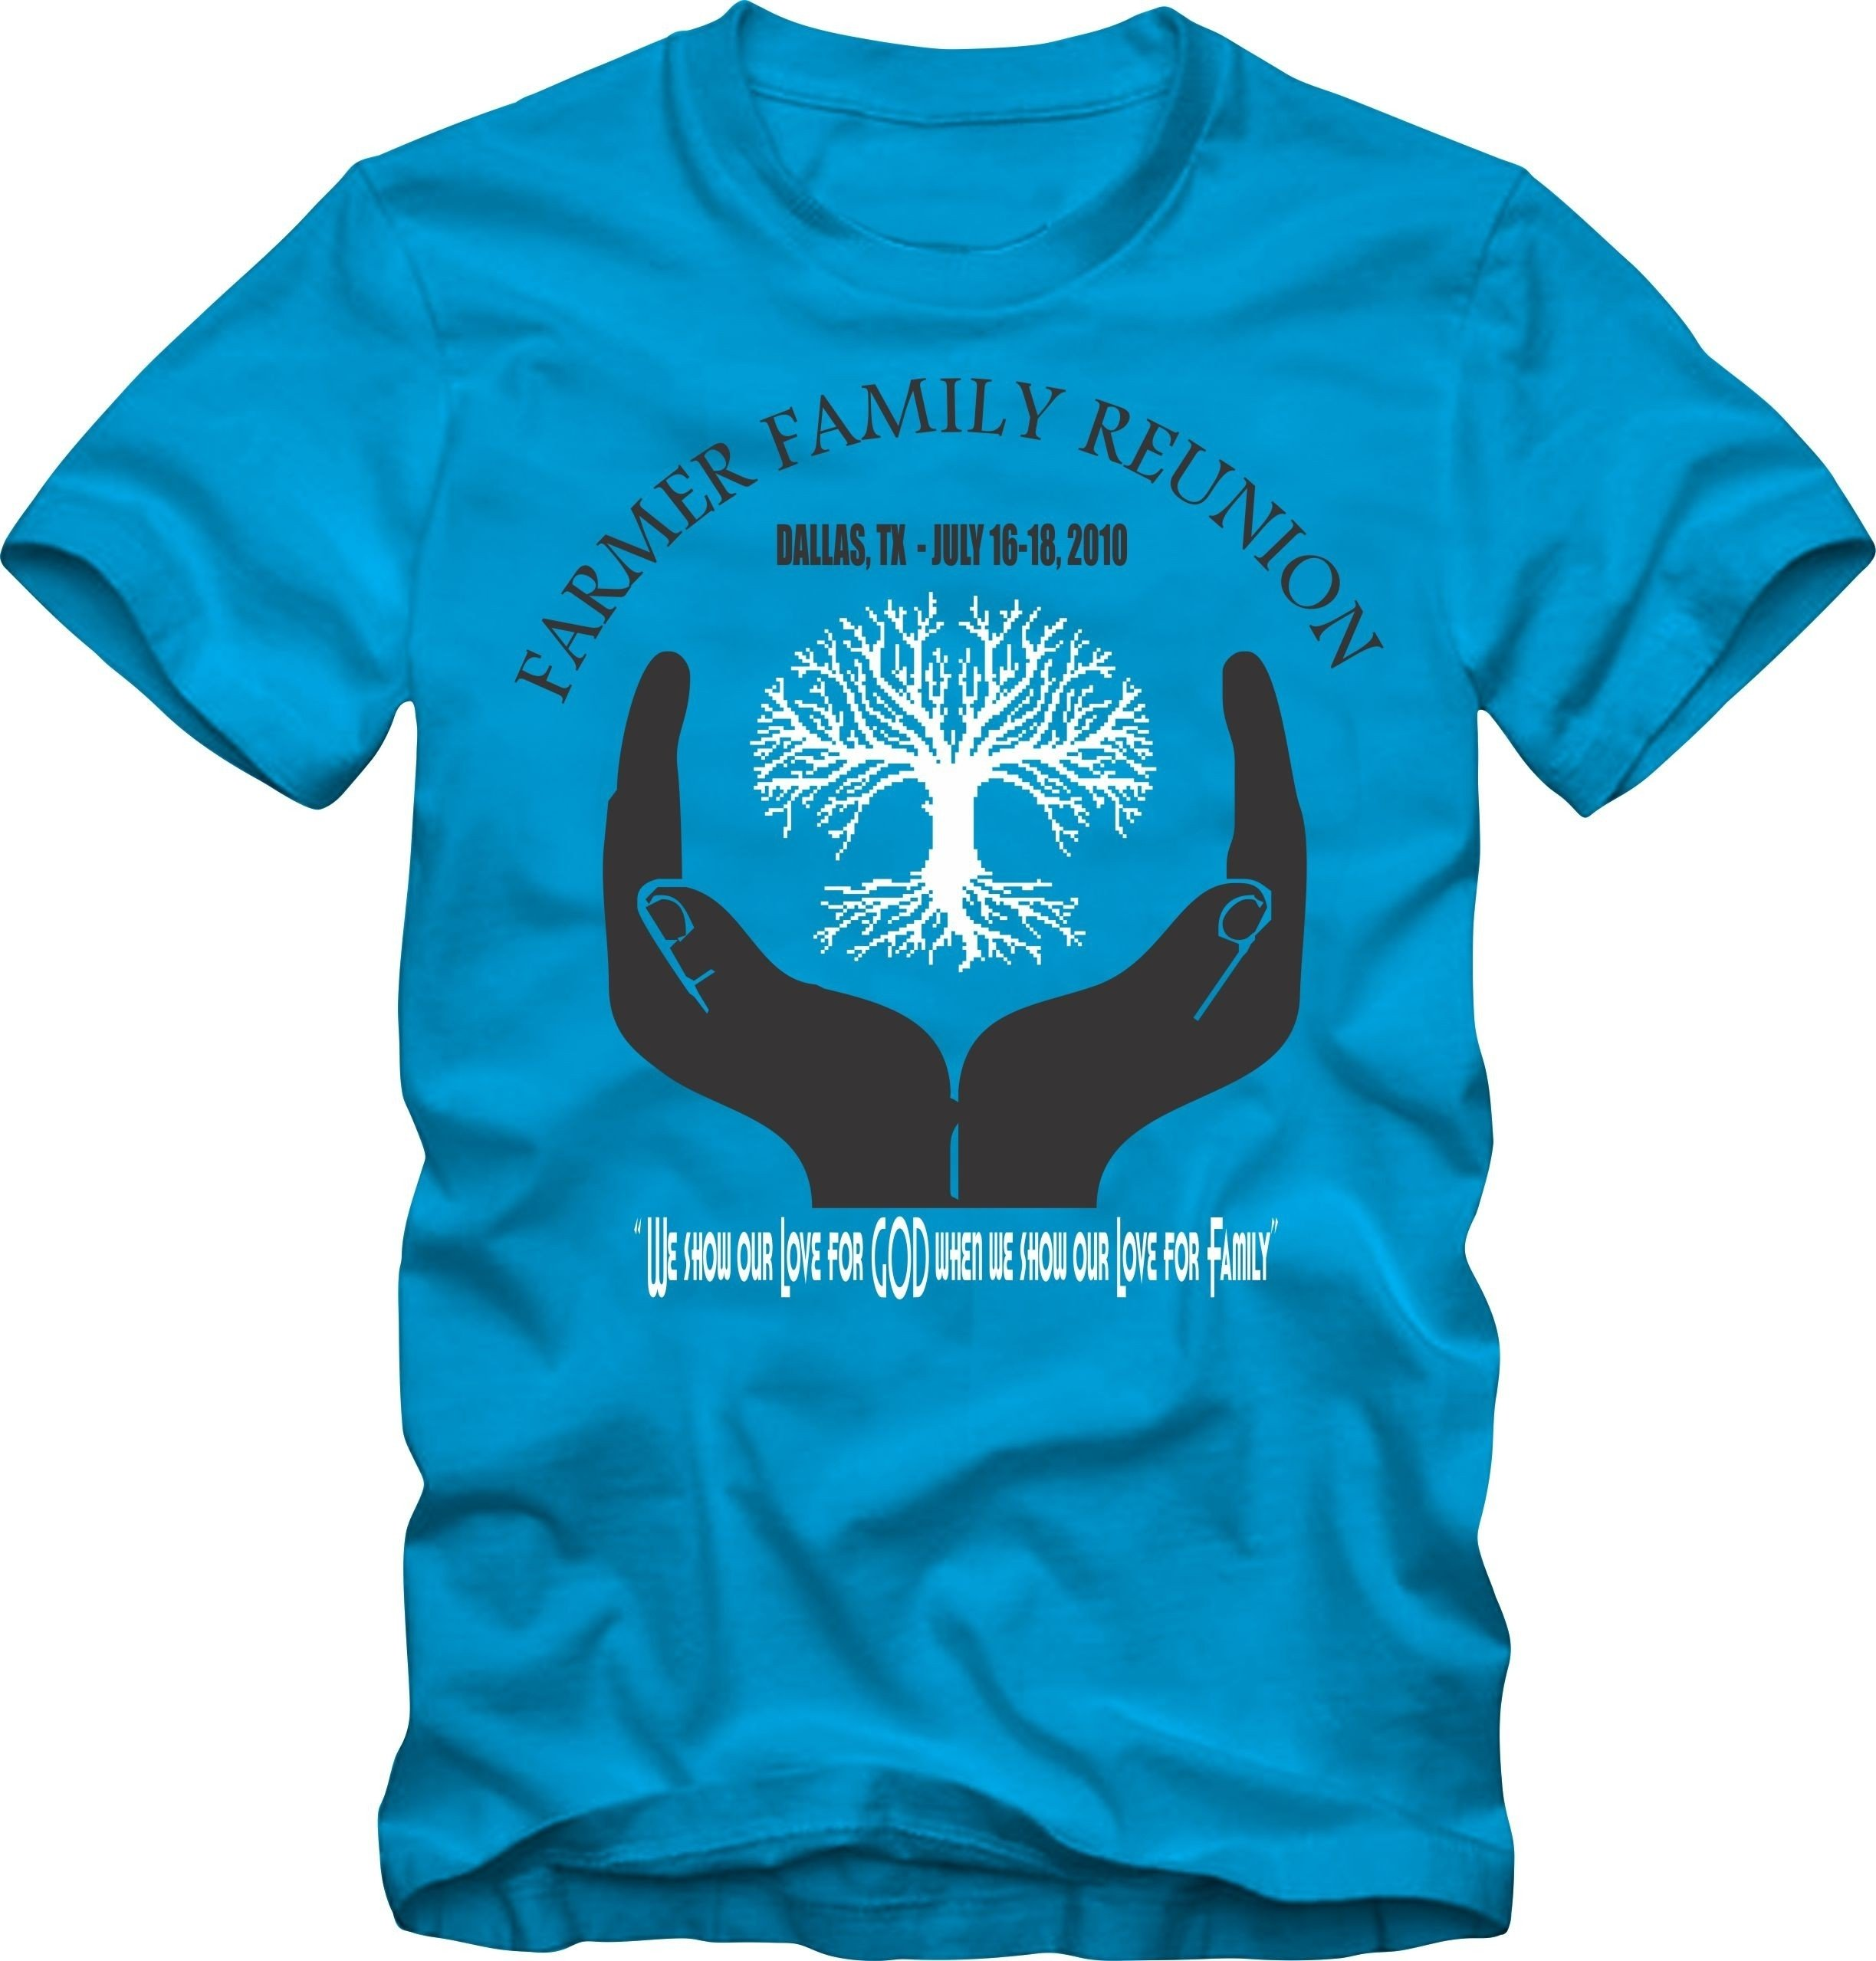 family reunion shirt design ideas family reunion t shirts dallas